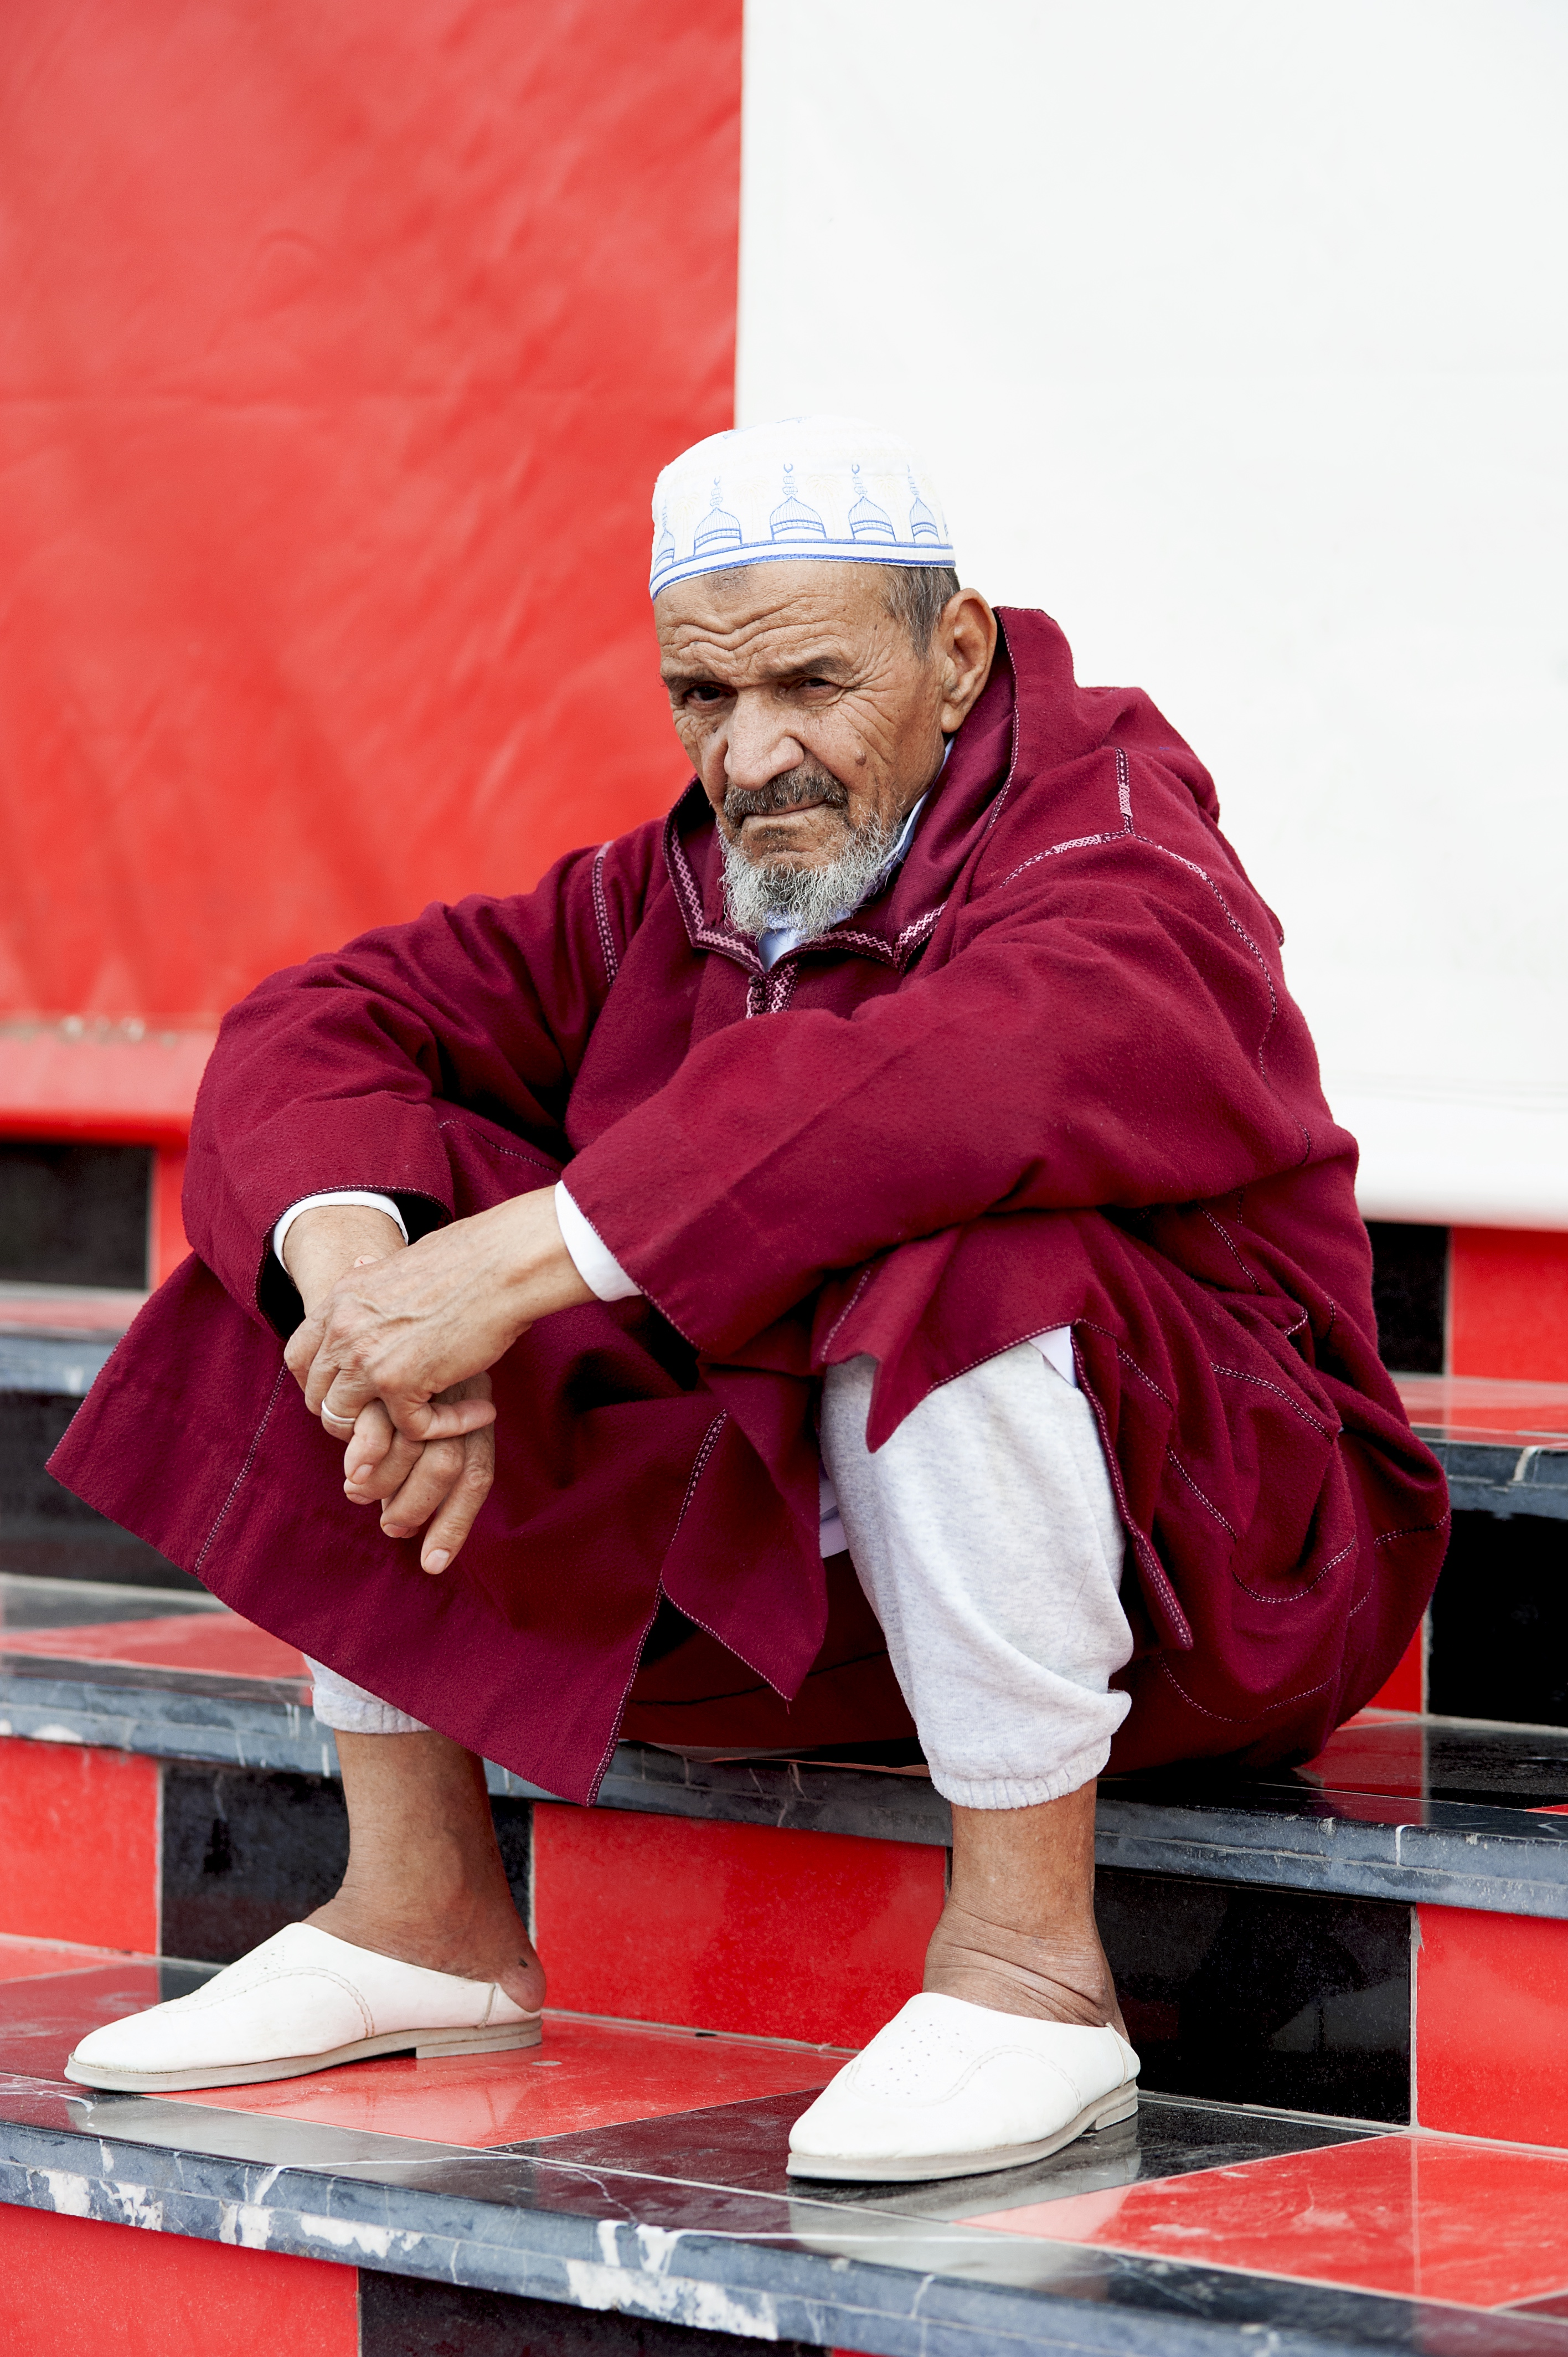 Red & White Moroccan man